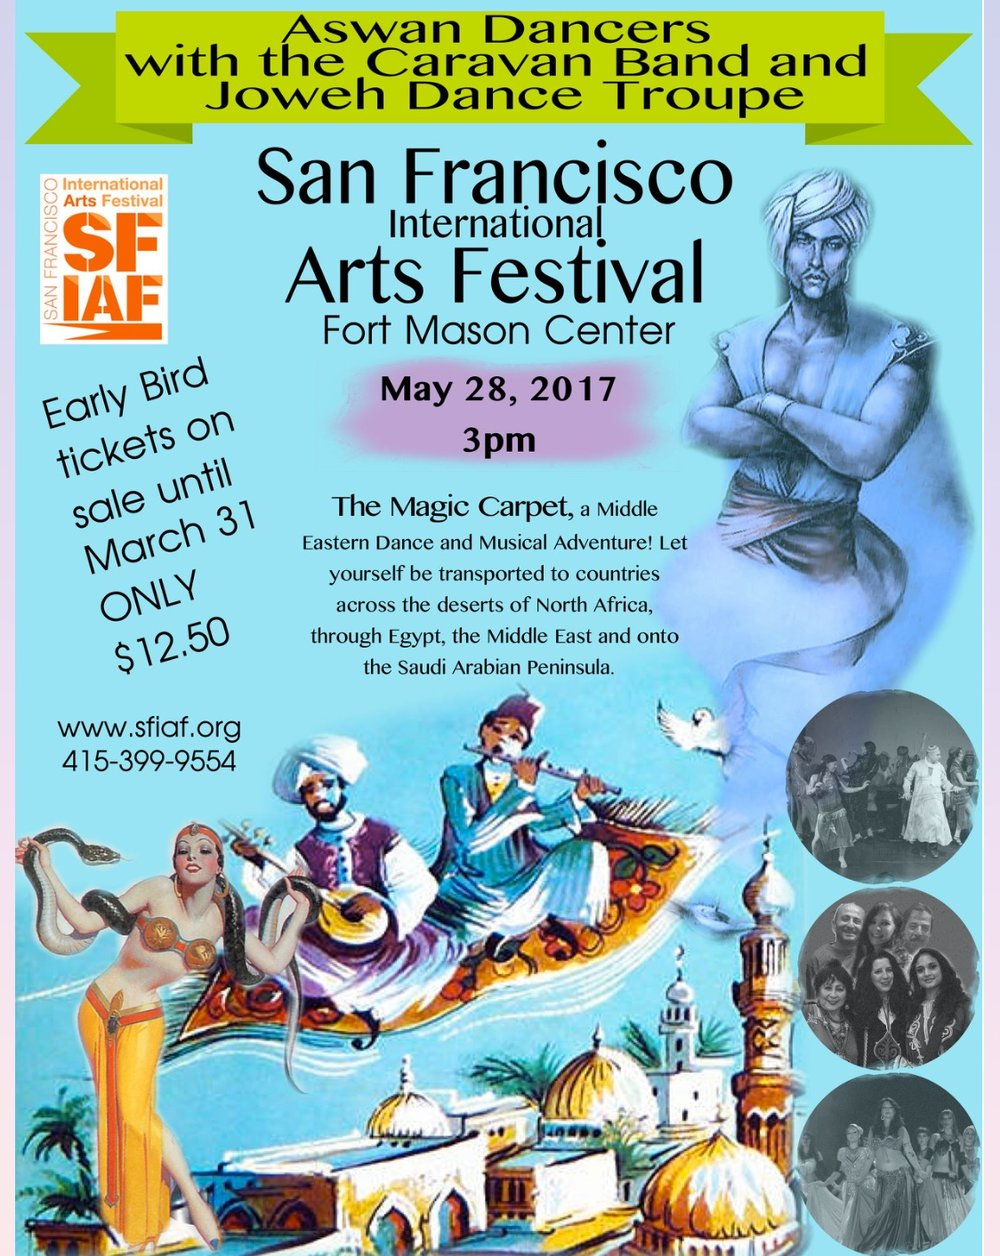 Amina Goodyear and the Aswan Dancers perform The Magic Carpet at the San Francisco International Arts Festival 2017